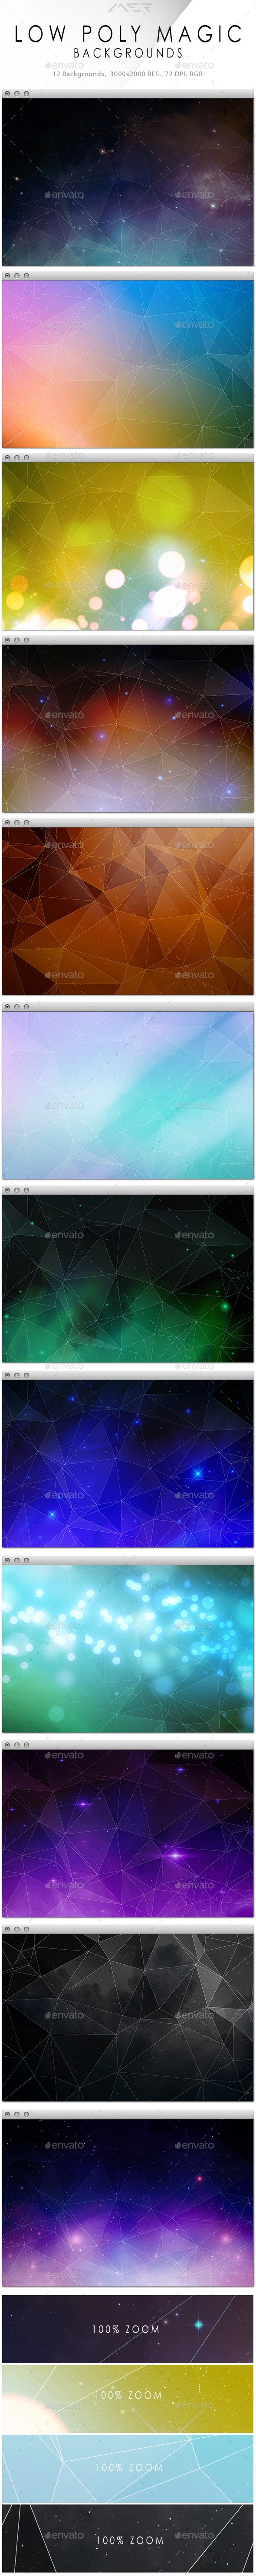 Low Poly Magic Backgrounds Collection - Abstract Backgrounds